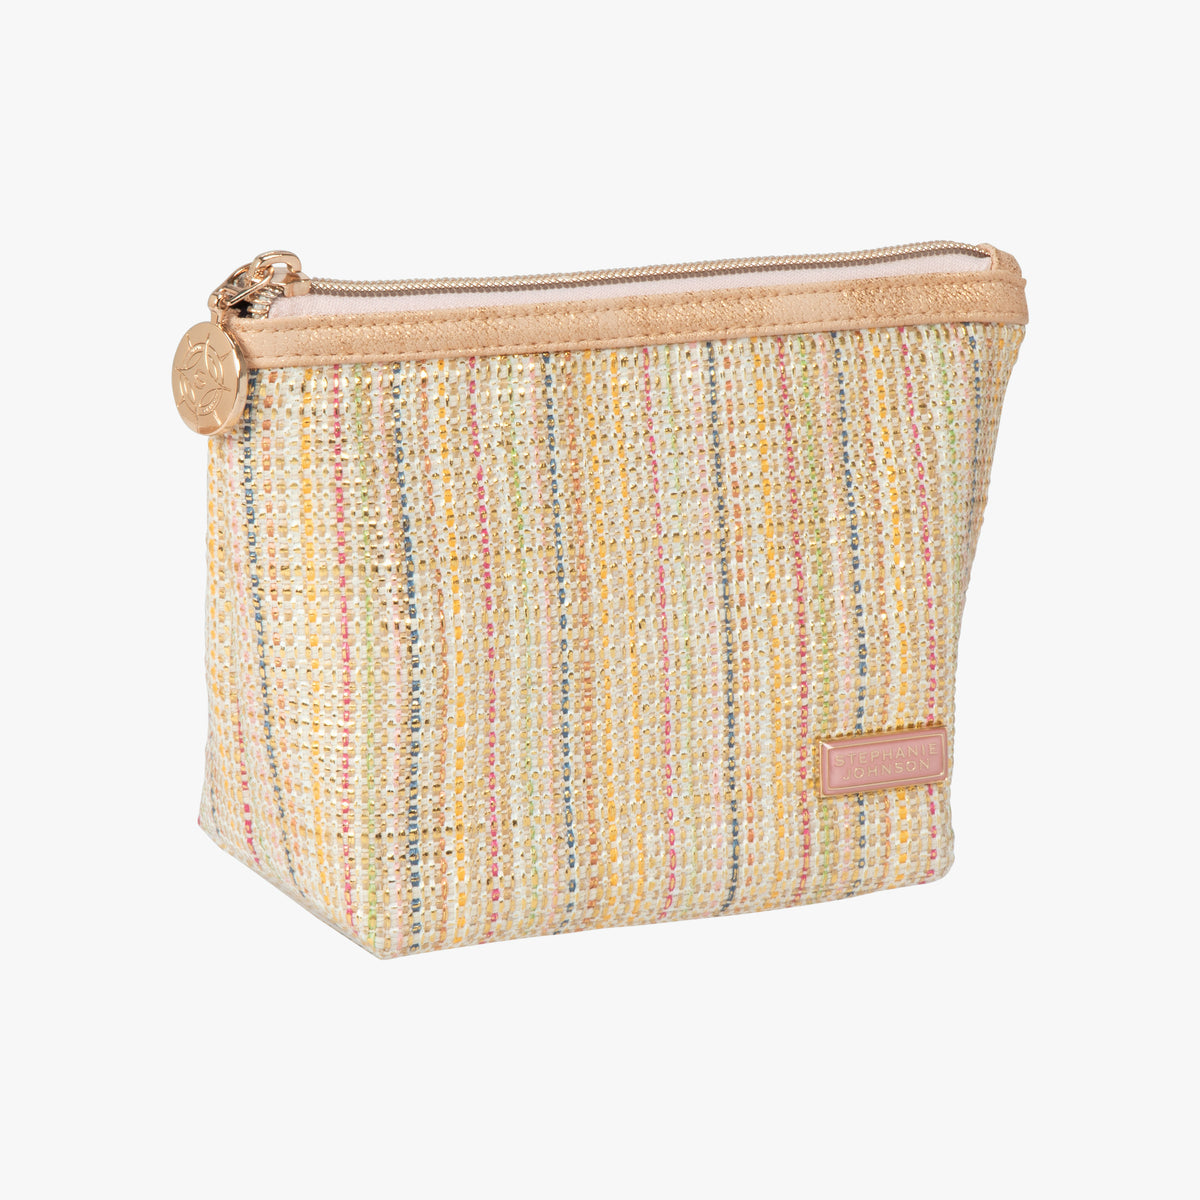 46f590a62fab21 ... Laura Small Trapezoid Bag Laura Small Trapezoid Bag in Jakarta - Gold  Angled View in in ...